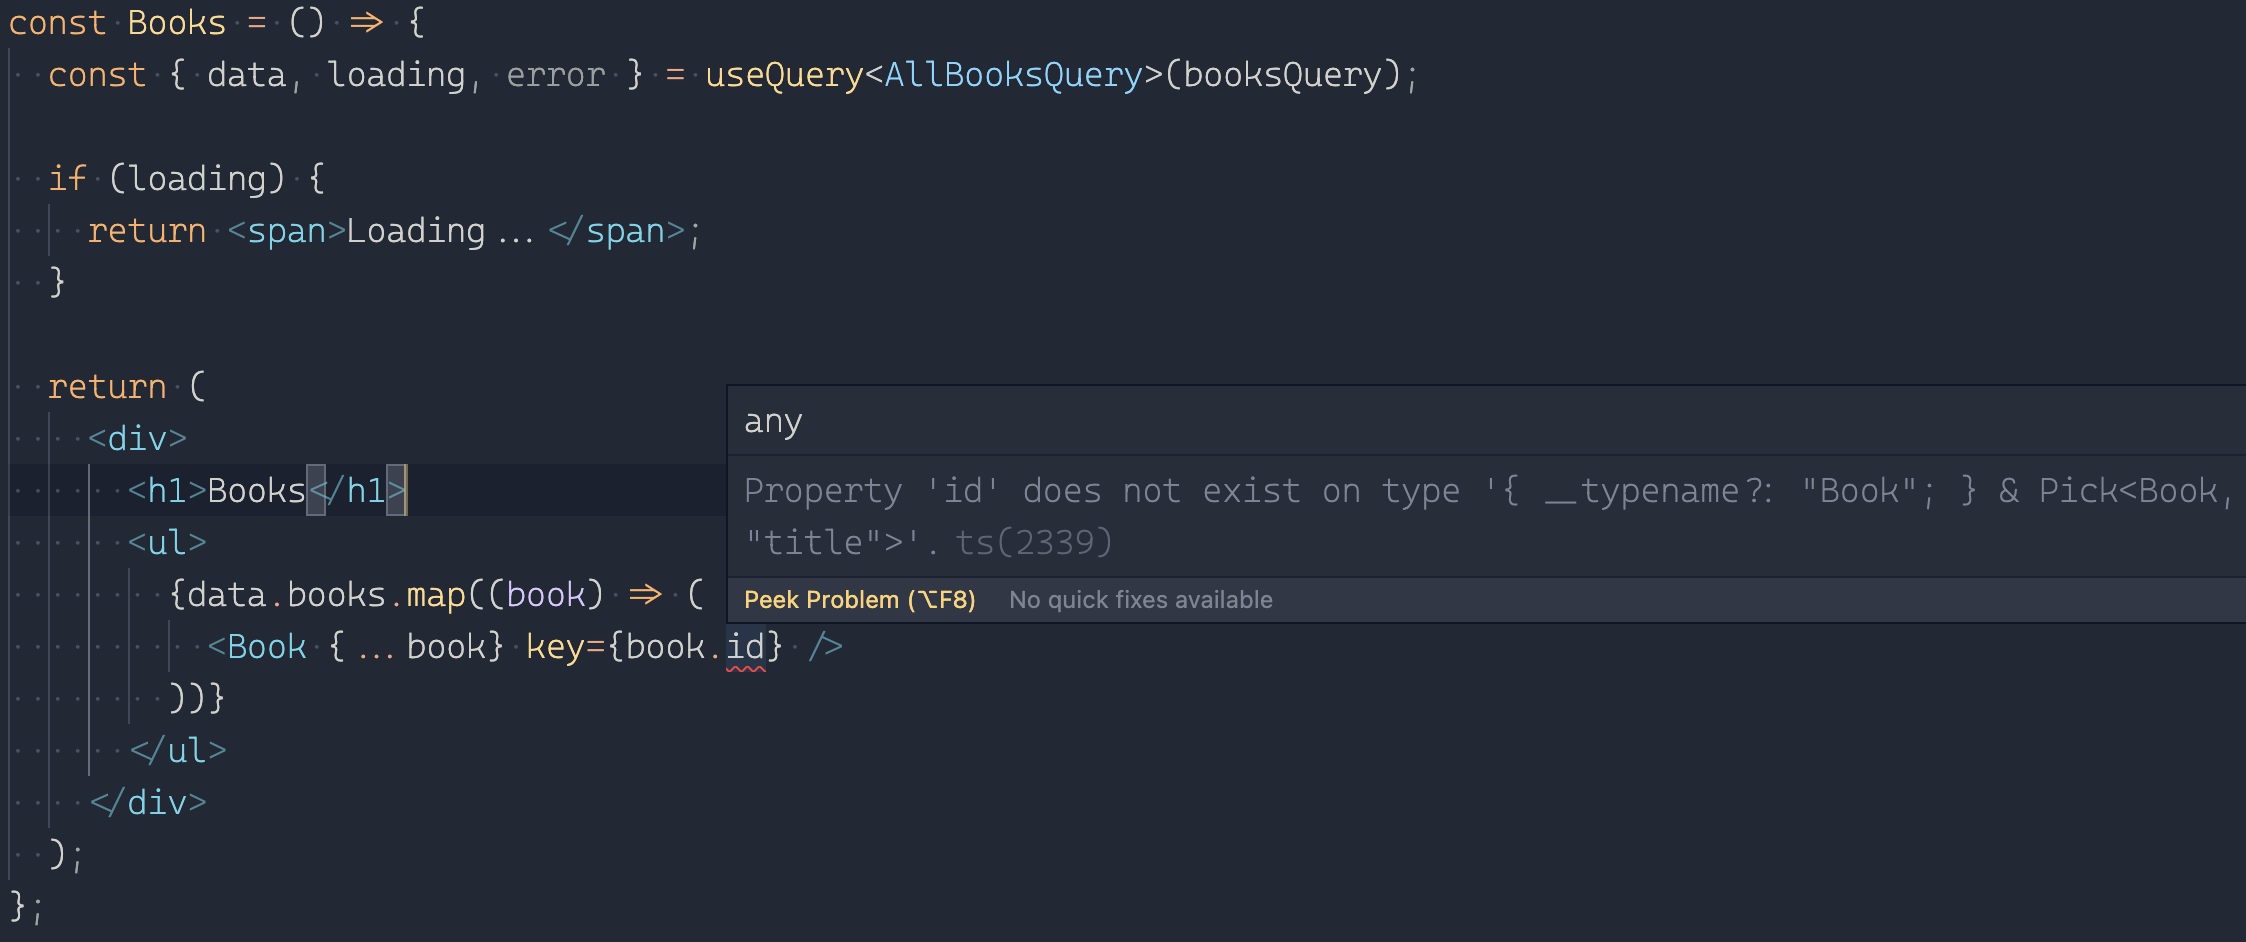 Property 'id' does not exist